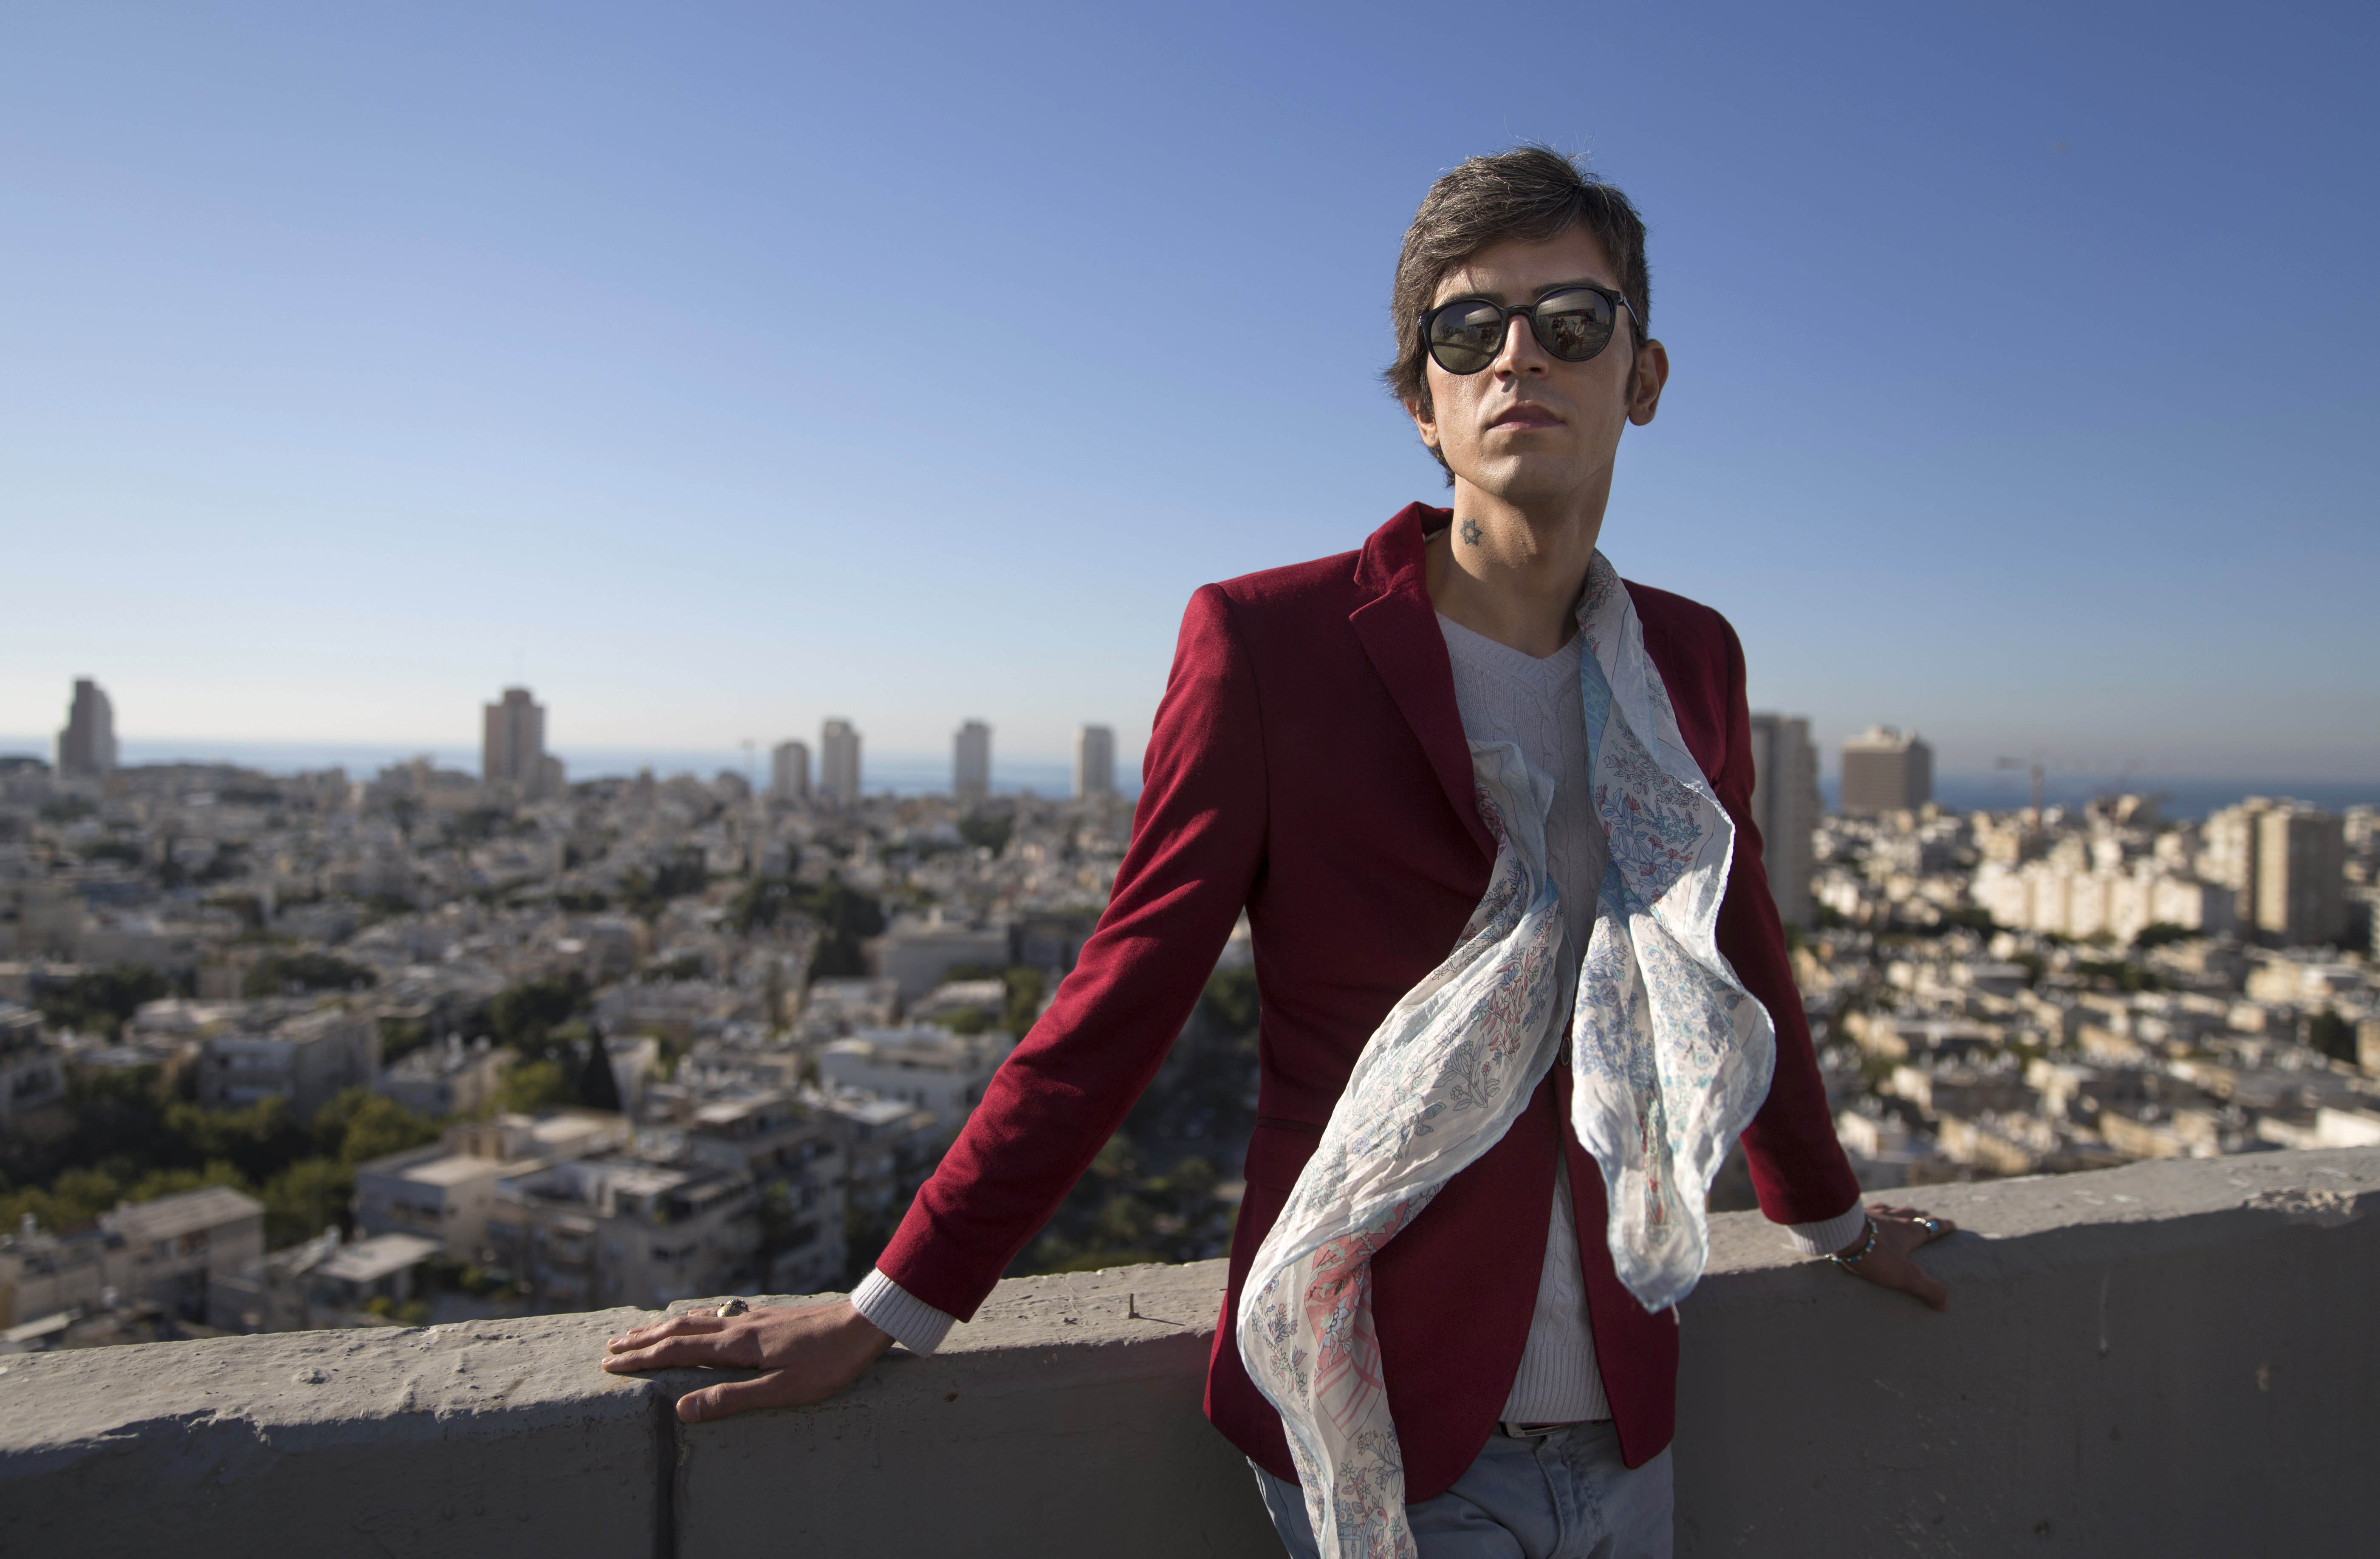 Iranian poet, Payam Feili poses for a photograph in Tel Aviv, Israel on Dec. 9, 2015.